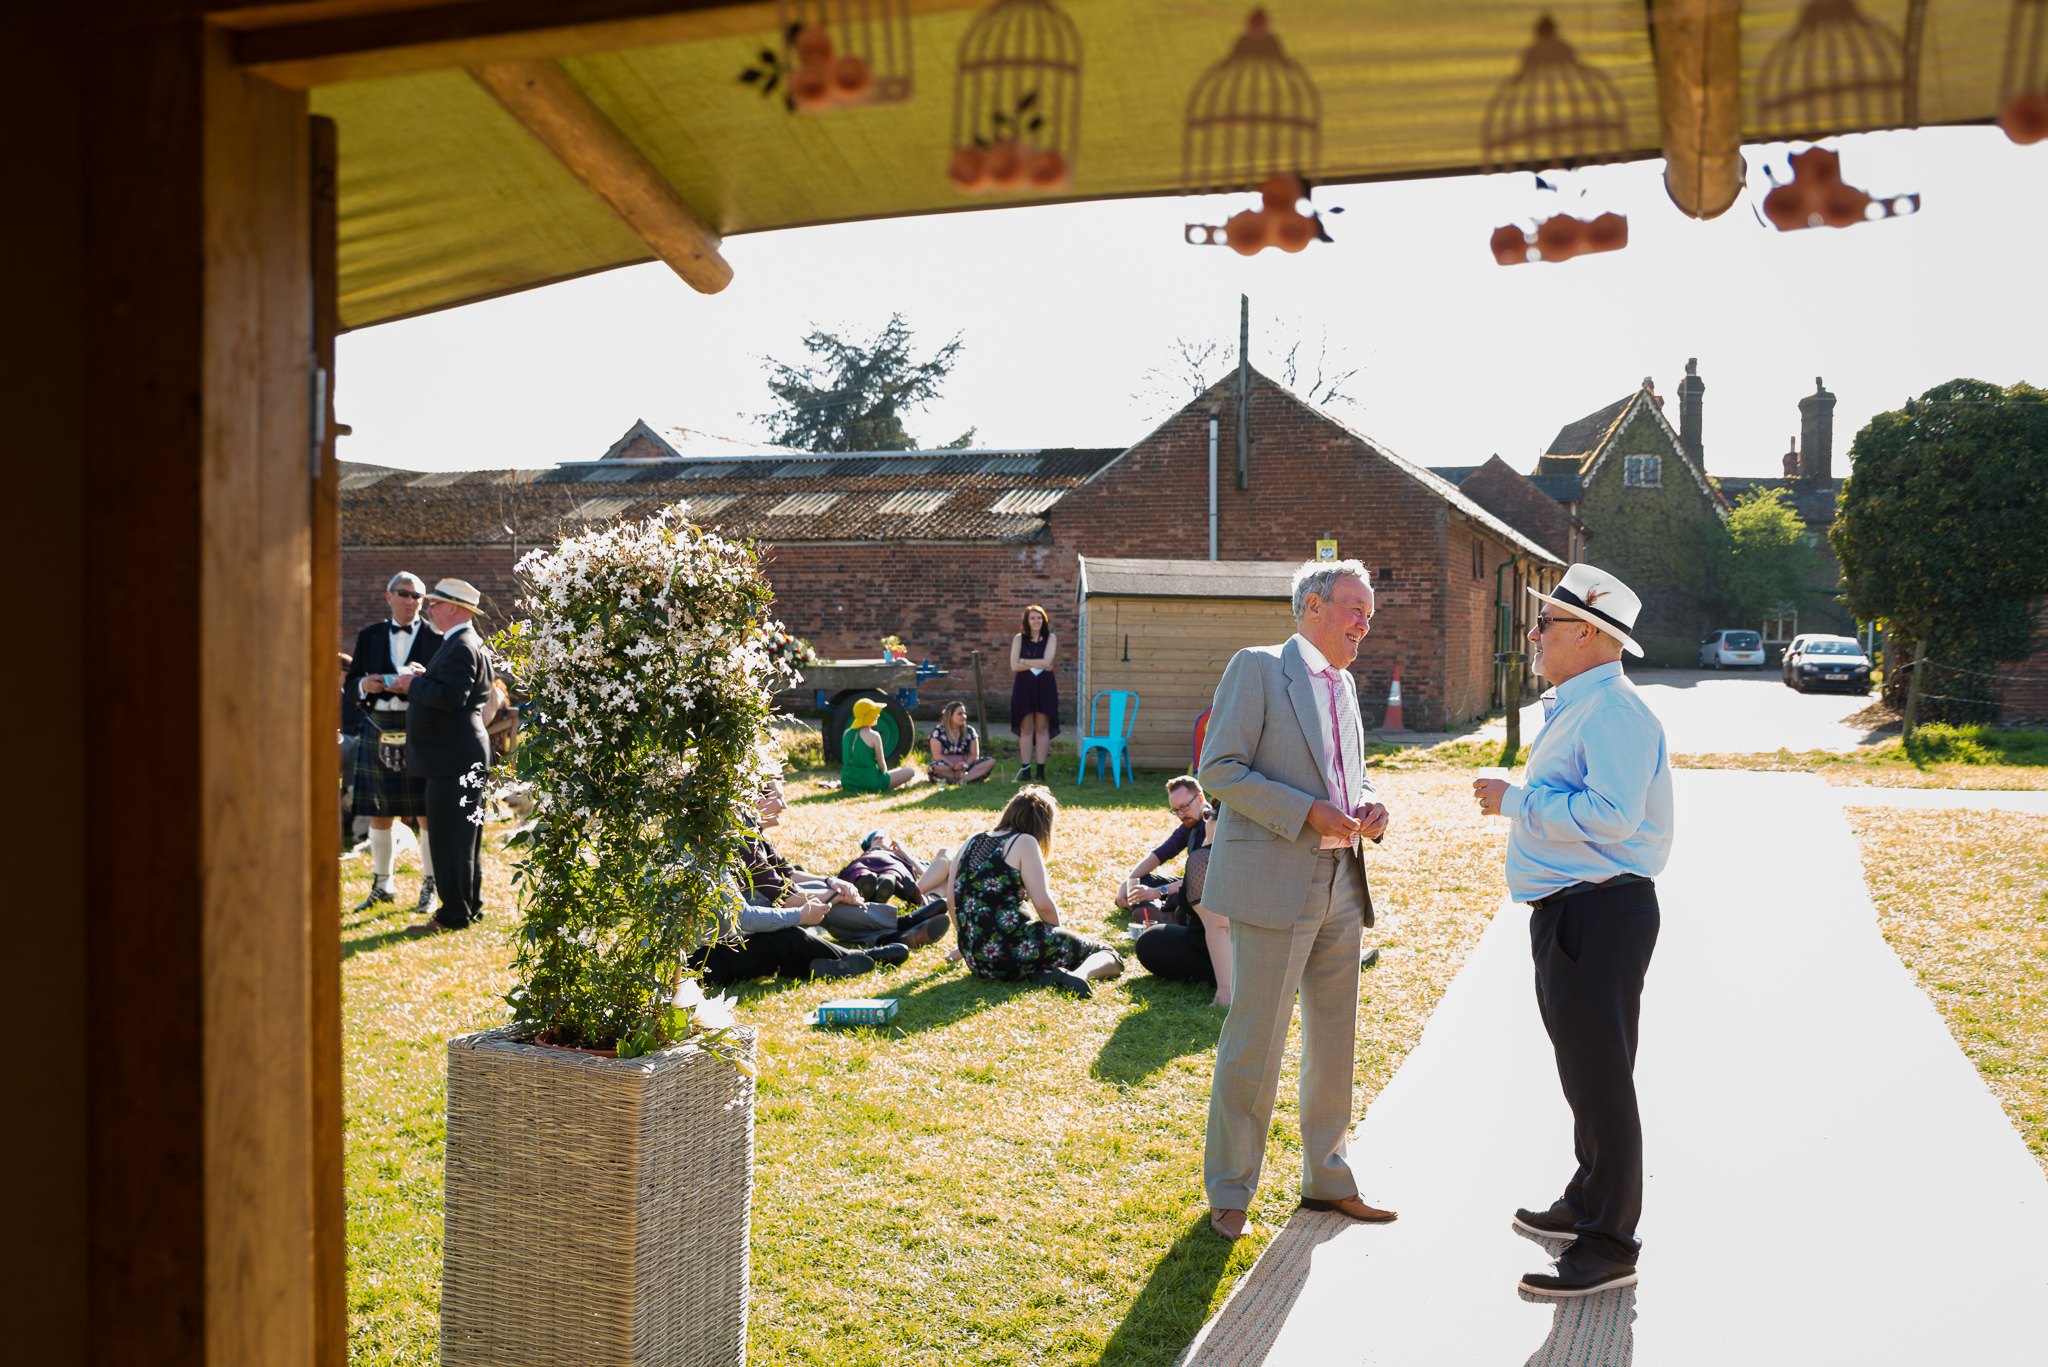 Guests enjoying a sunny day outside the tipi